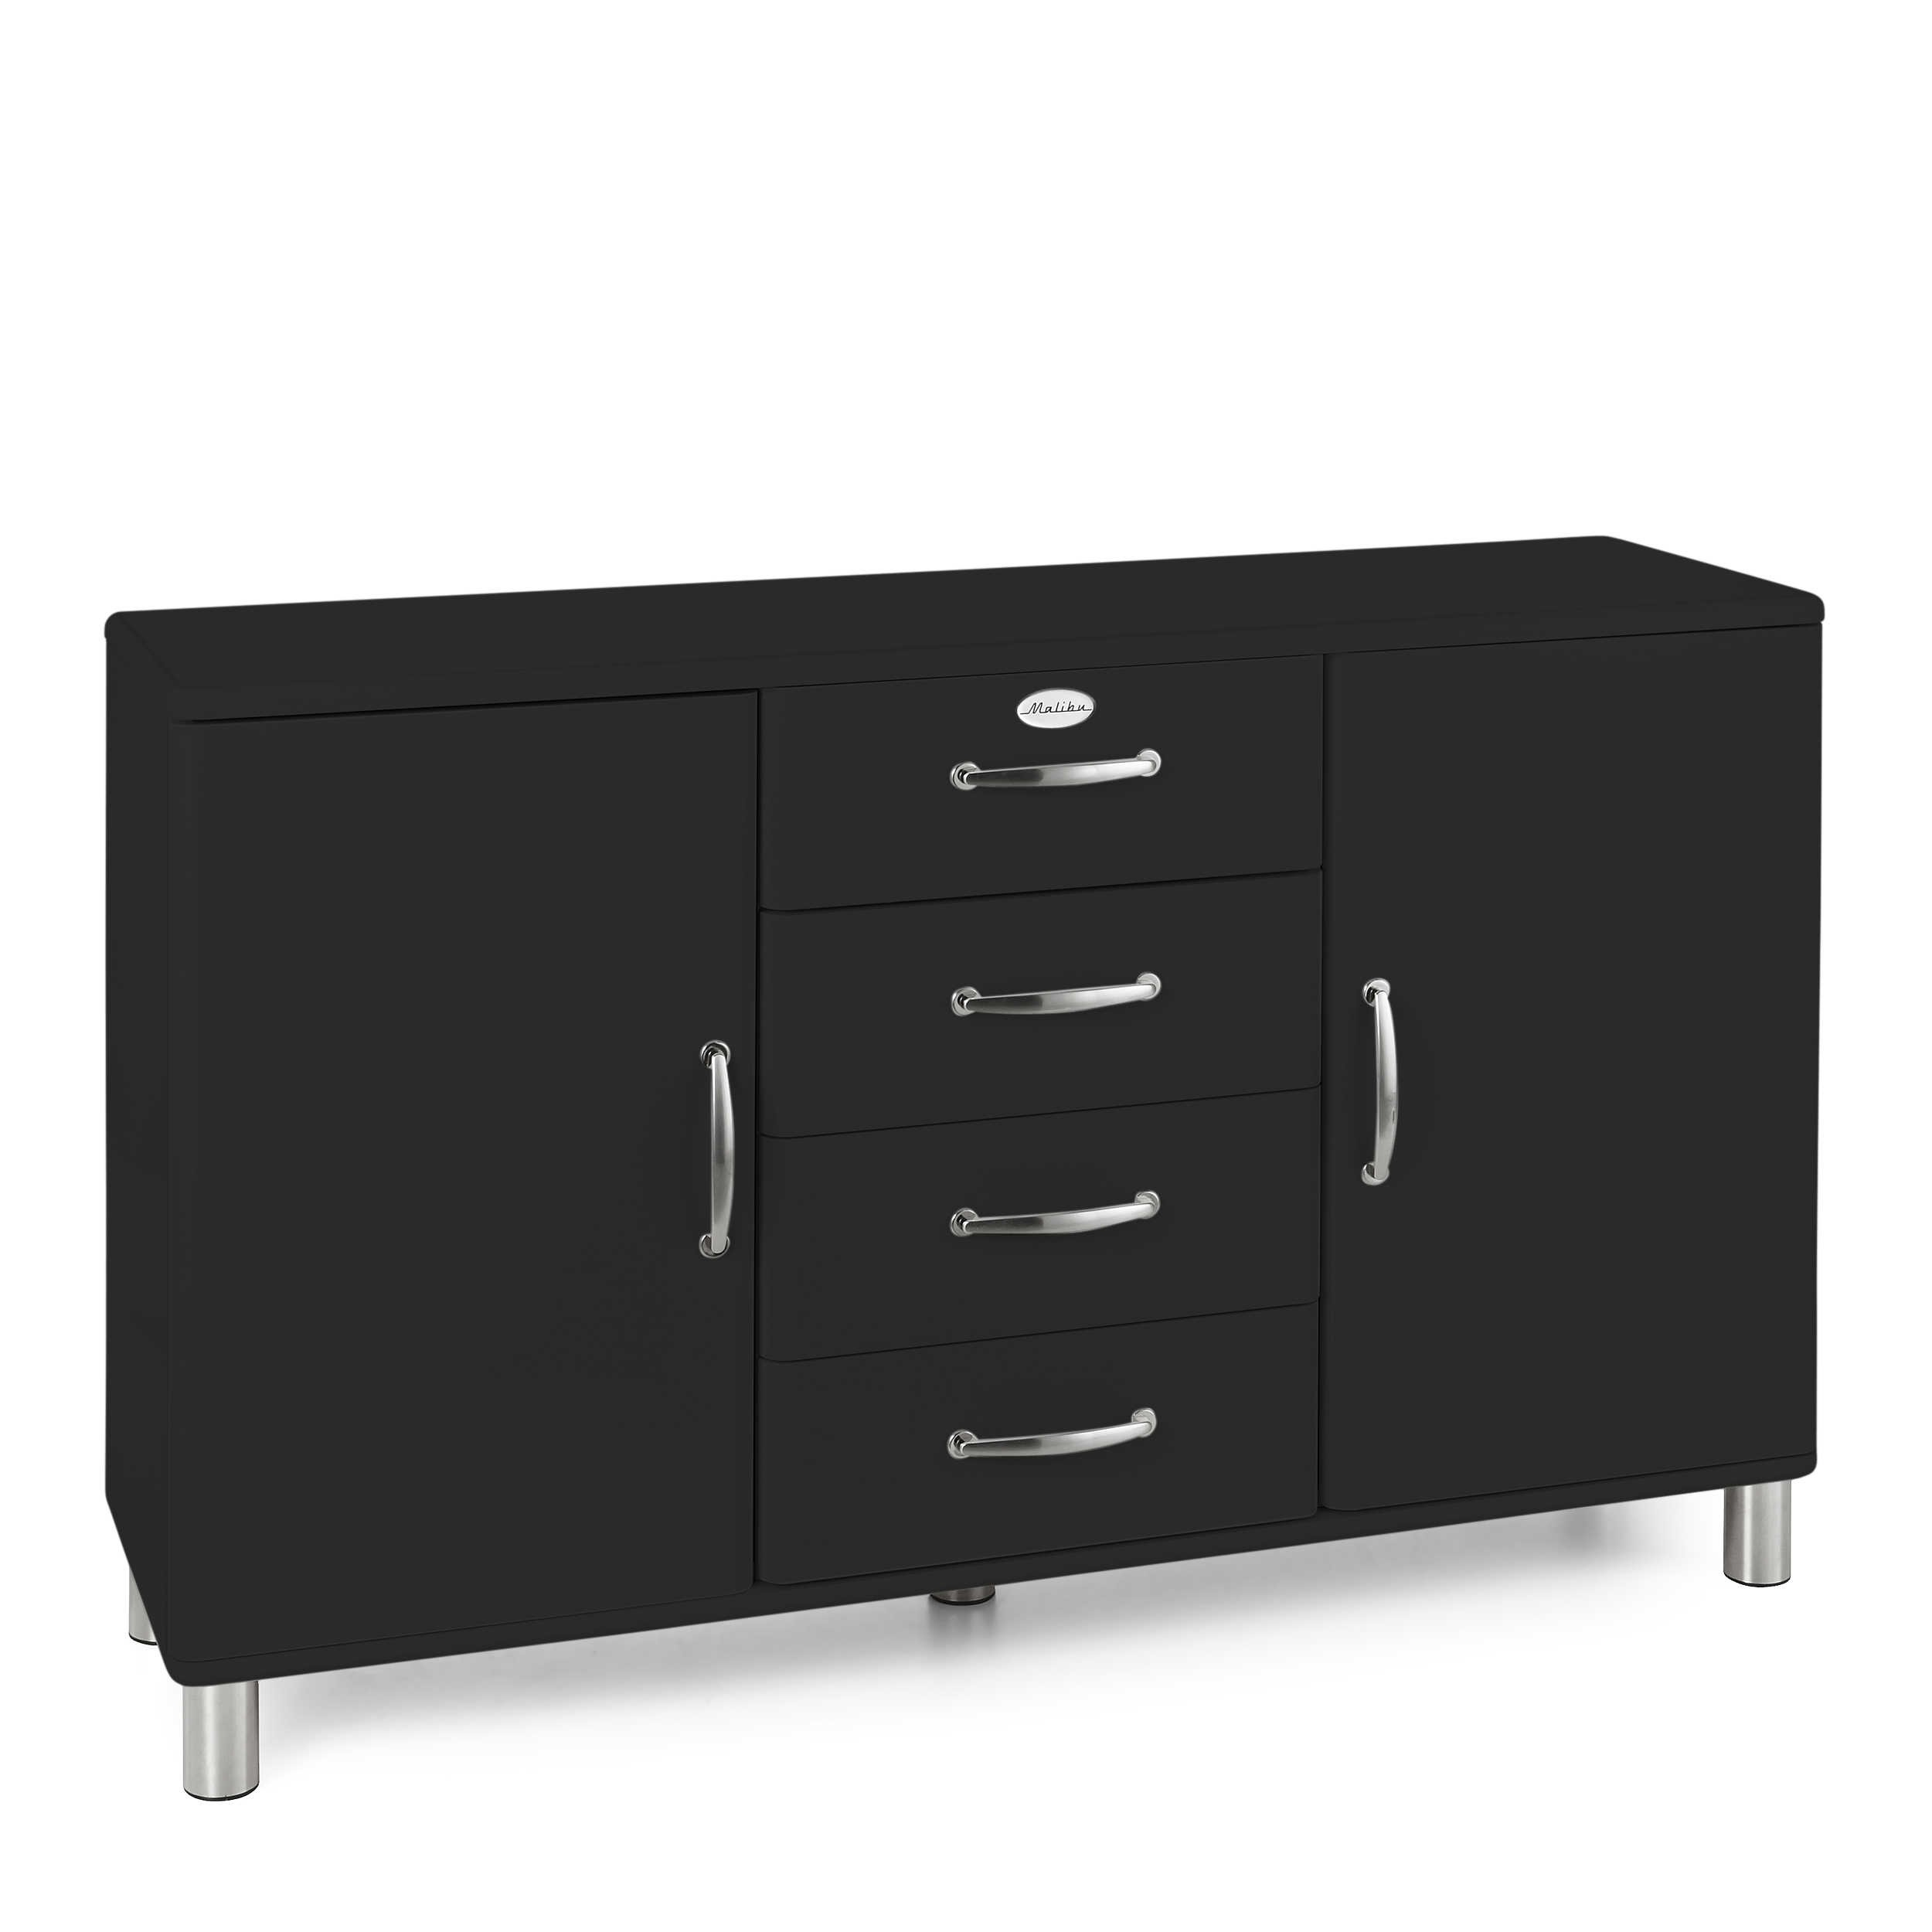 tenzo sideboard malibu schwarz lack hochglanz online. Black Bedroom Furniture Sets. Home Design Ideas